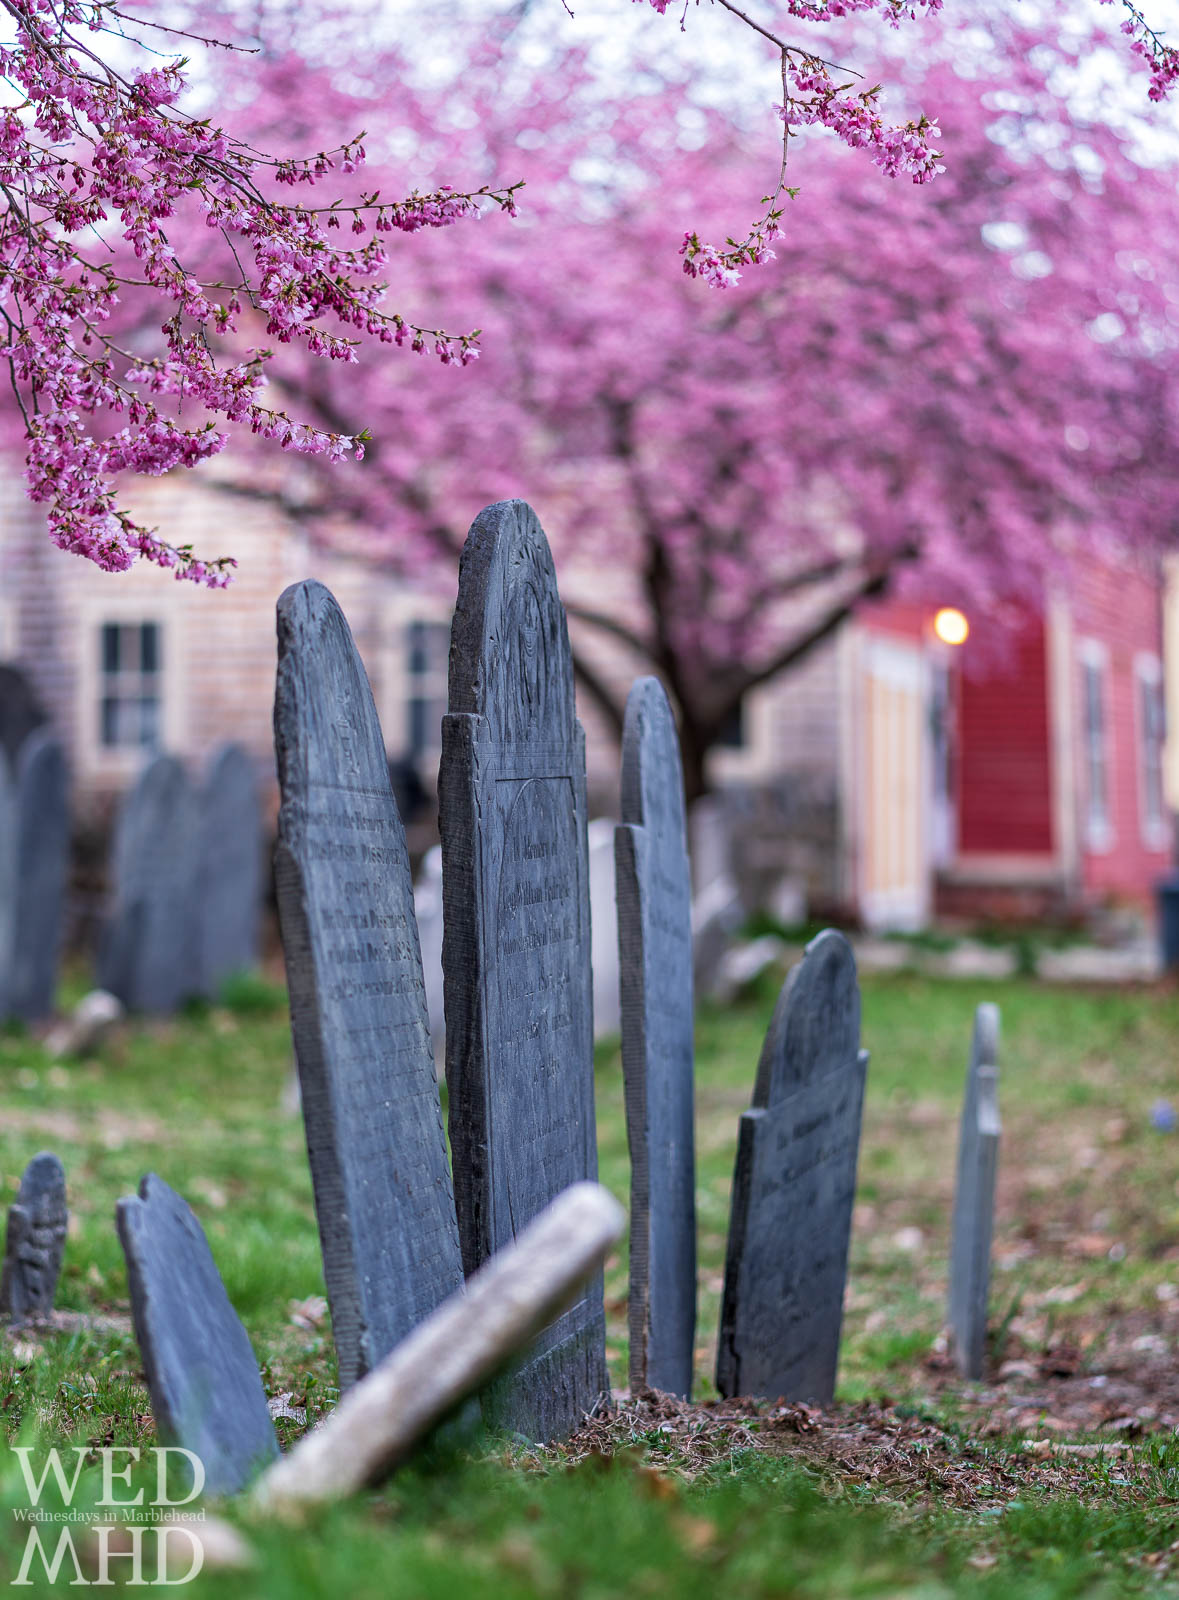 After a several year hiatus peak cherry blossoms have returned to the Harris Street Cemetary in Marblehead